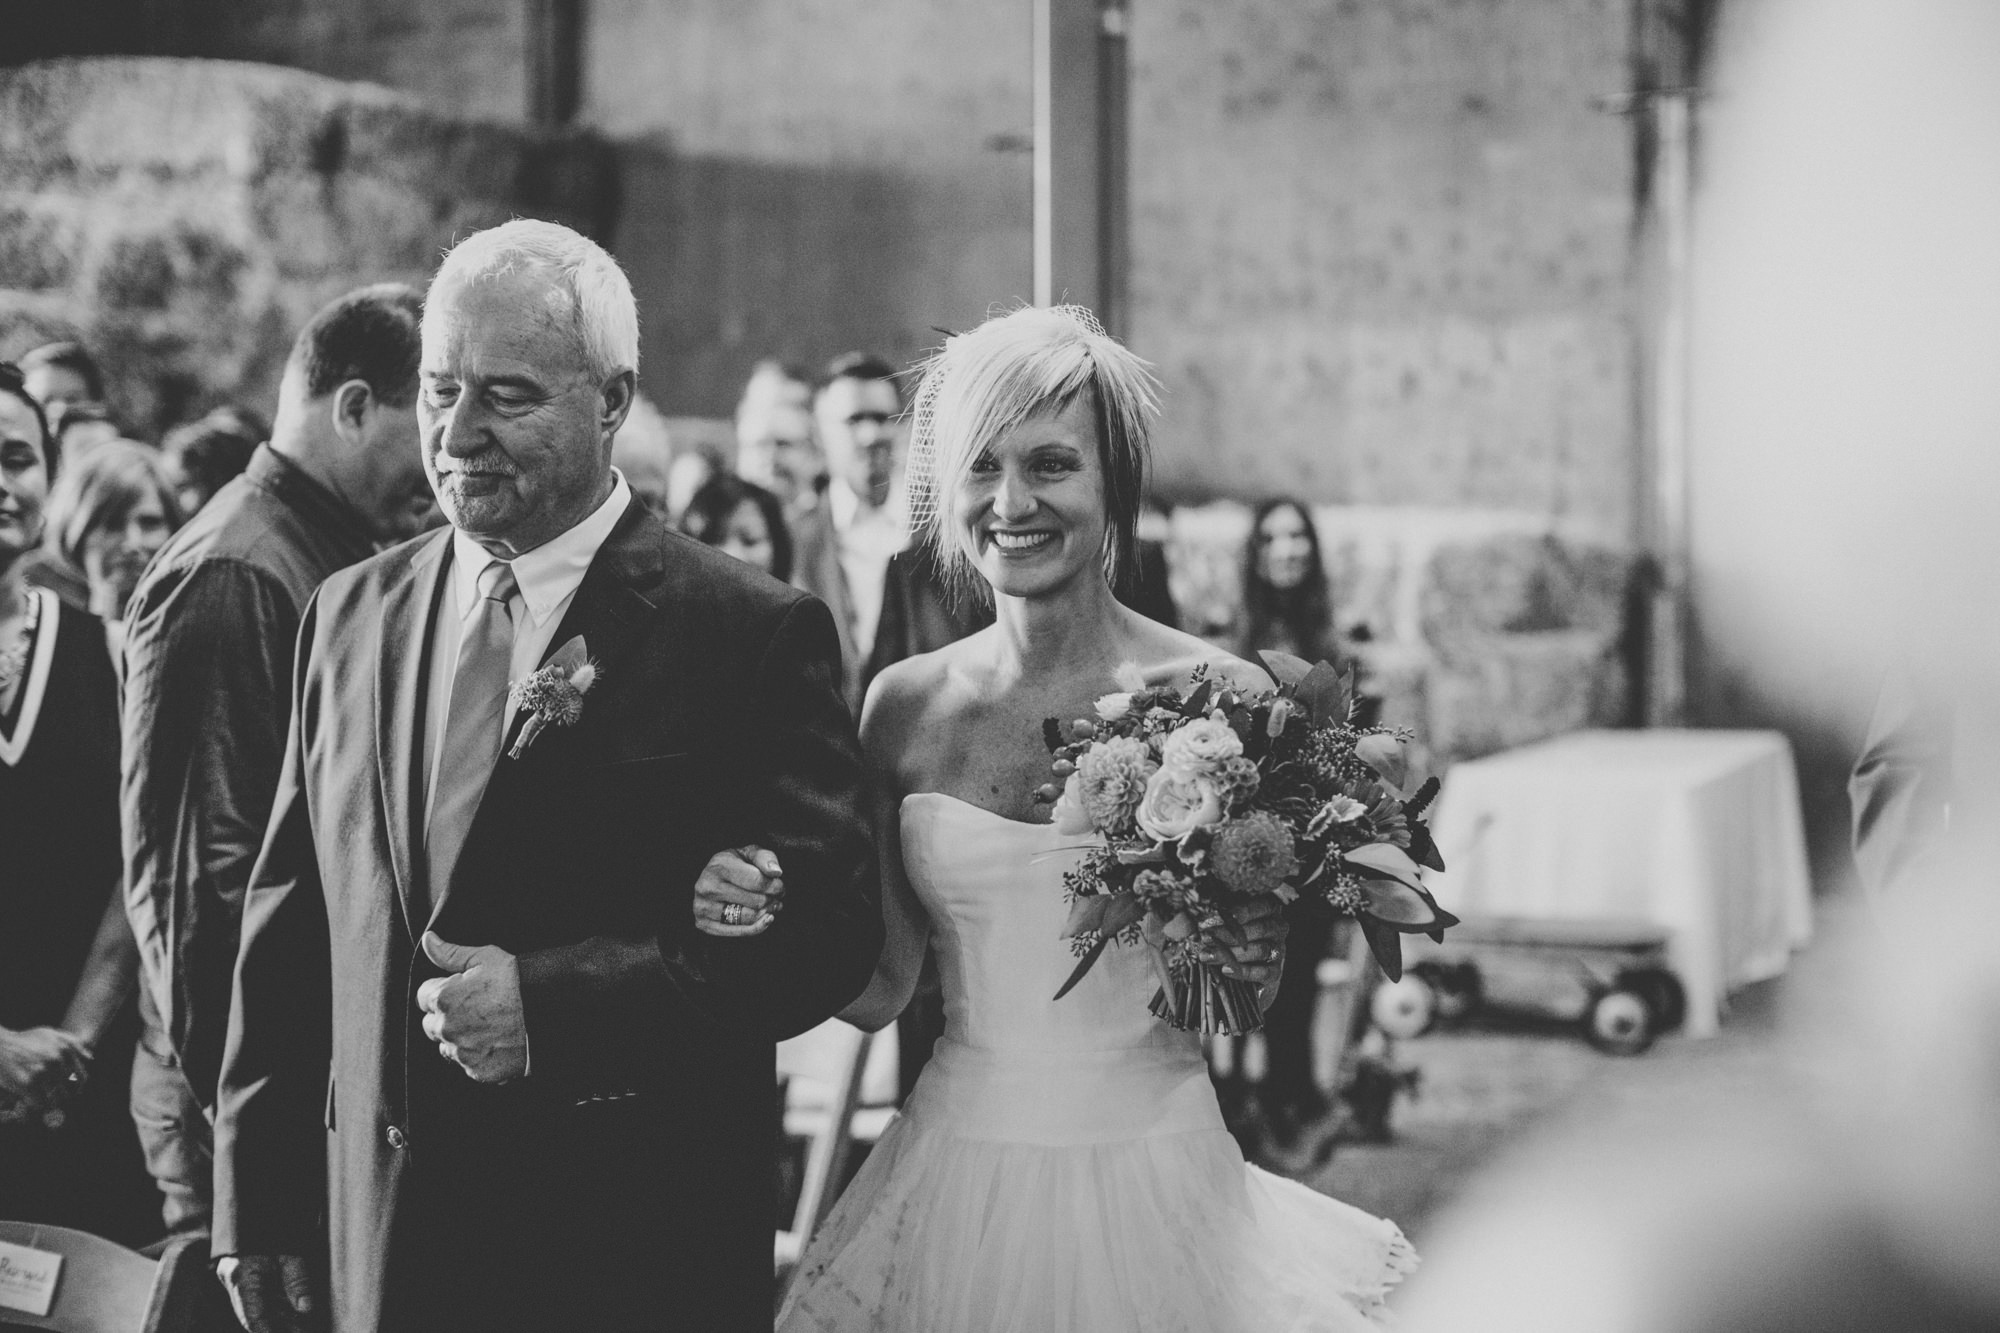 Toby's Feed Barn Wedding ©Anne-Claire Brun 76